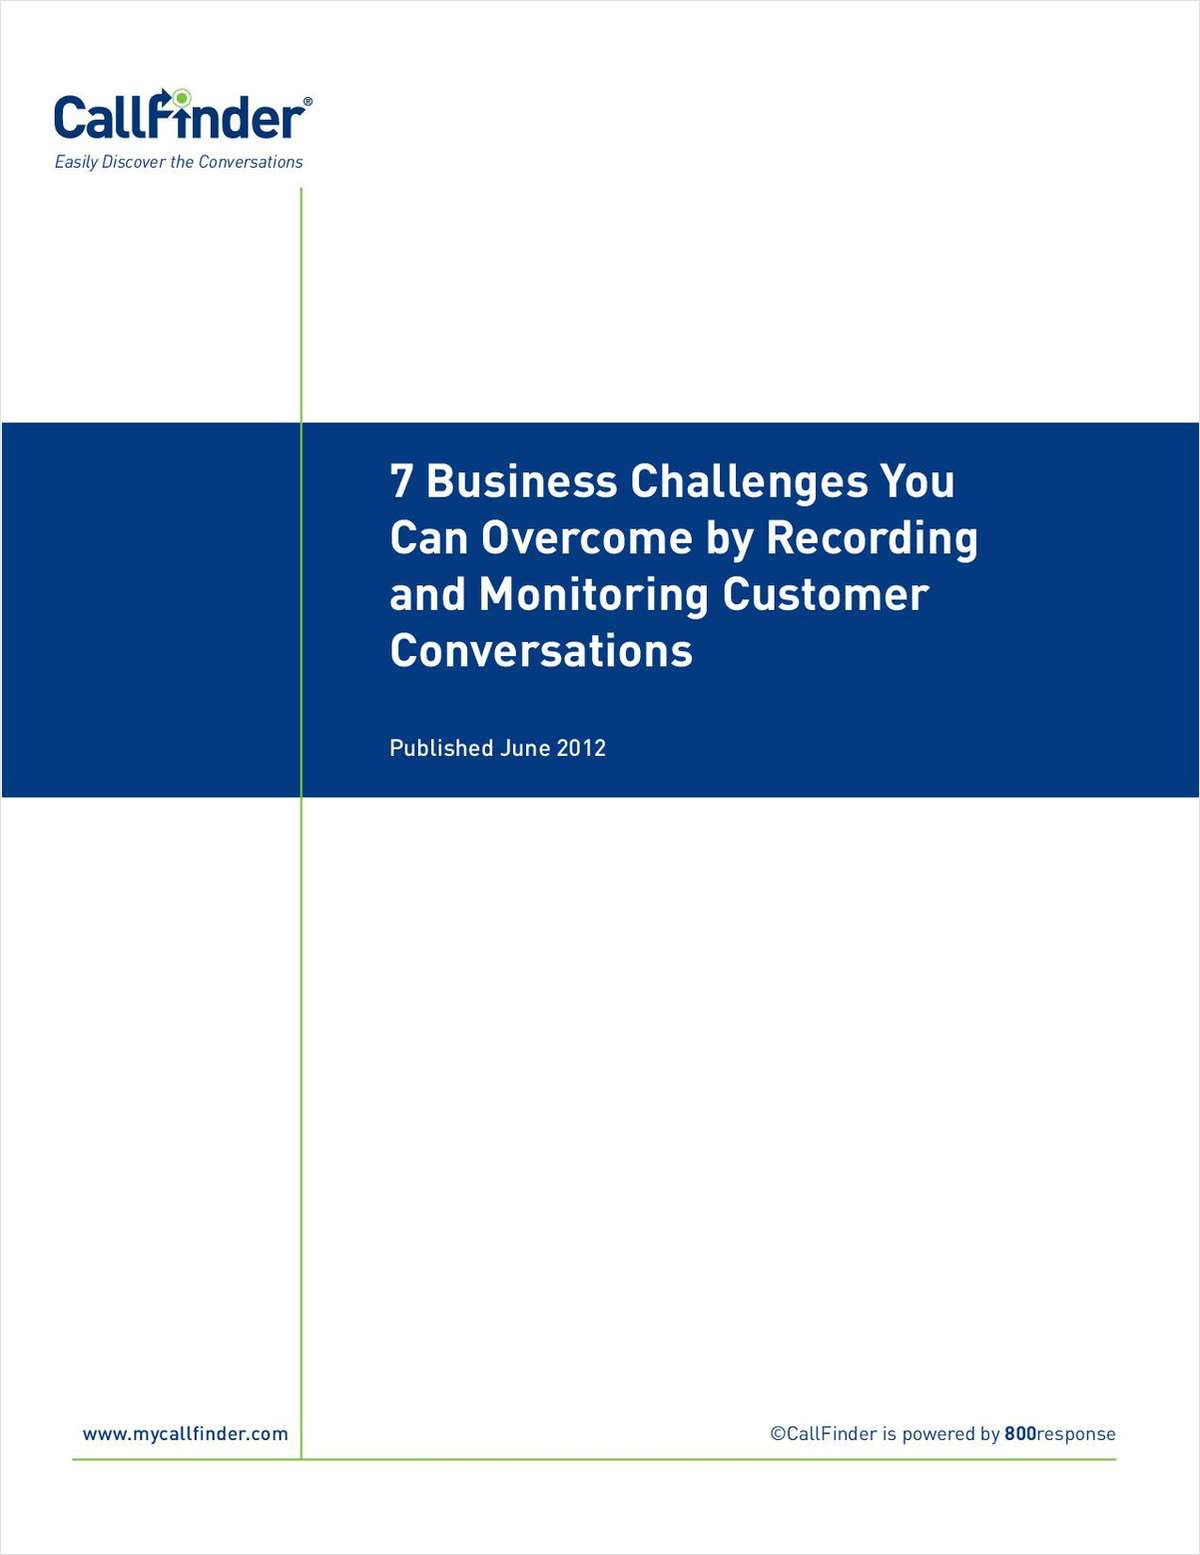 7 Business Challenges You Can Overcome by Recording and Monitoring Customer Conversations